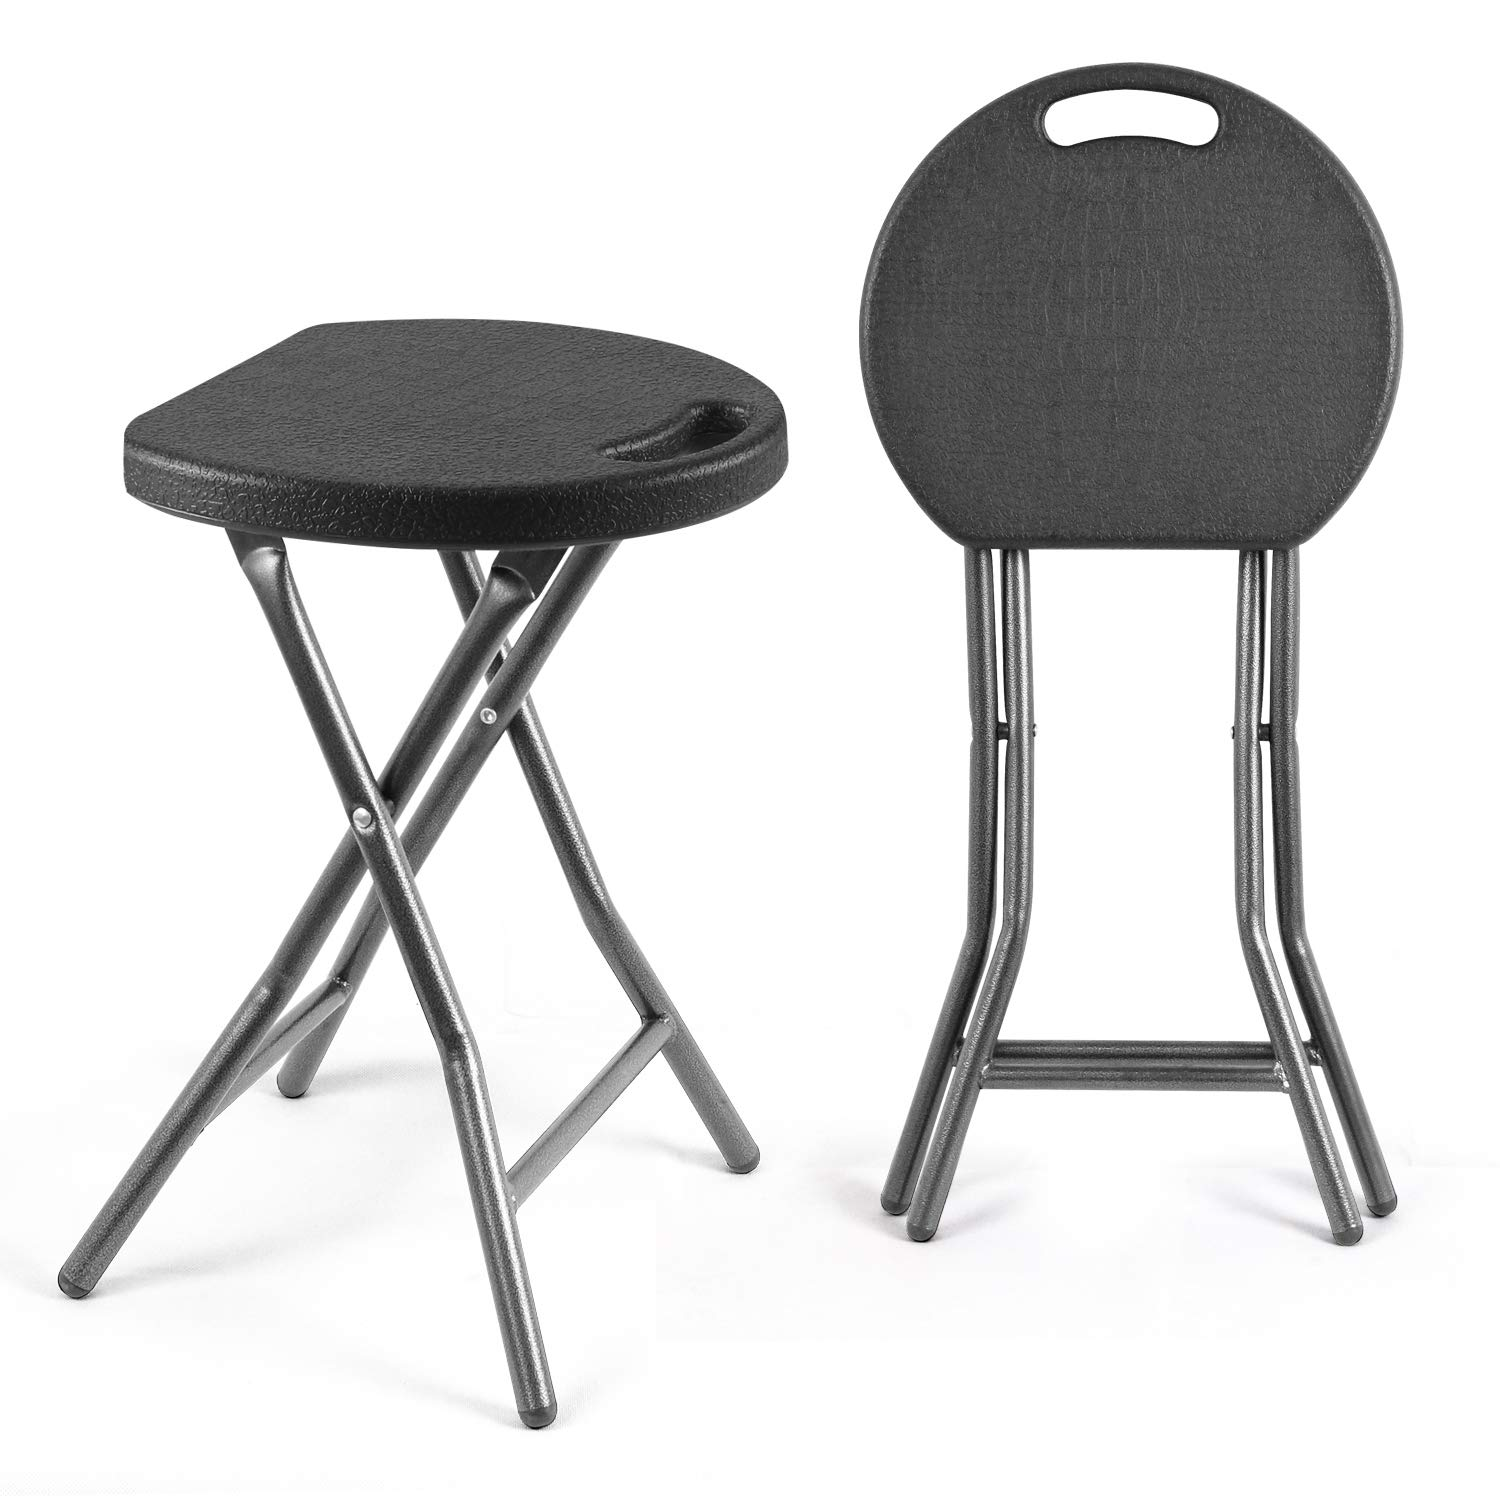 TAVR Portable Folding Stool 18.1 inch Set of 2 Heavy Duty Fold up Stool Metal and Plastic Foldable Stool for Adults Kitchen Garden Bathroom Collapsible Round Stool,300lbs Capacity,Black,CH1001 by TAVR Furniture